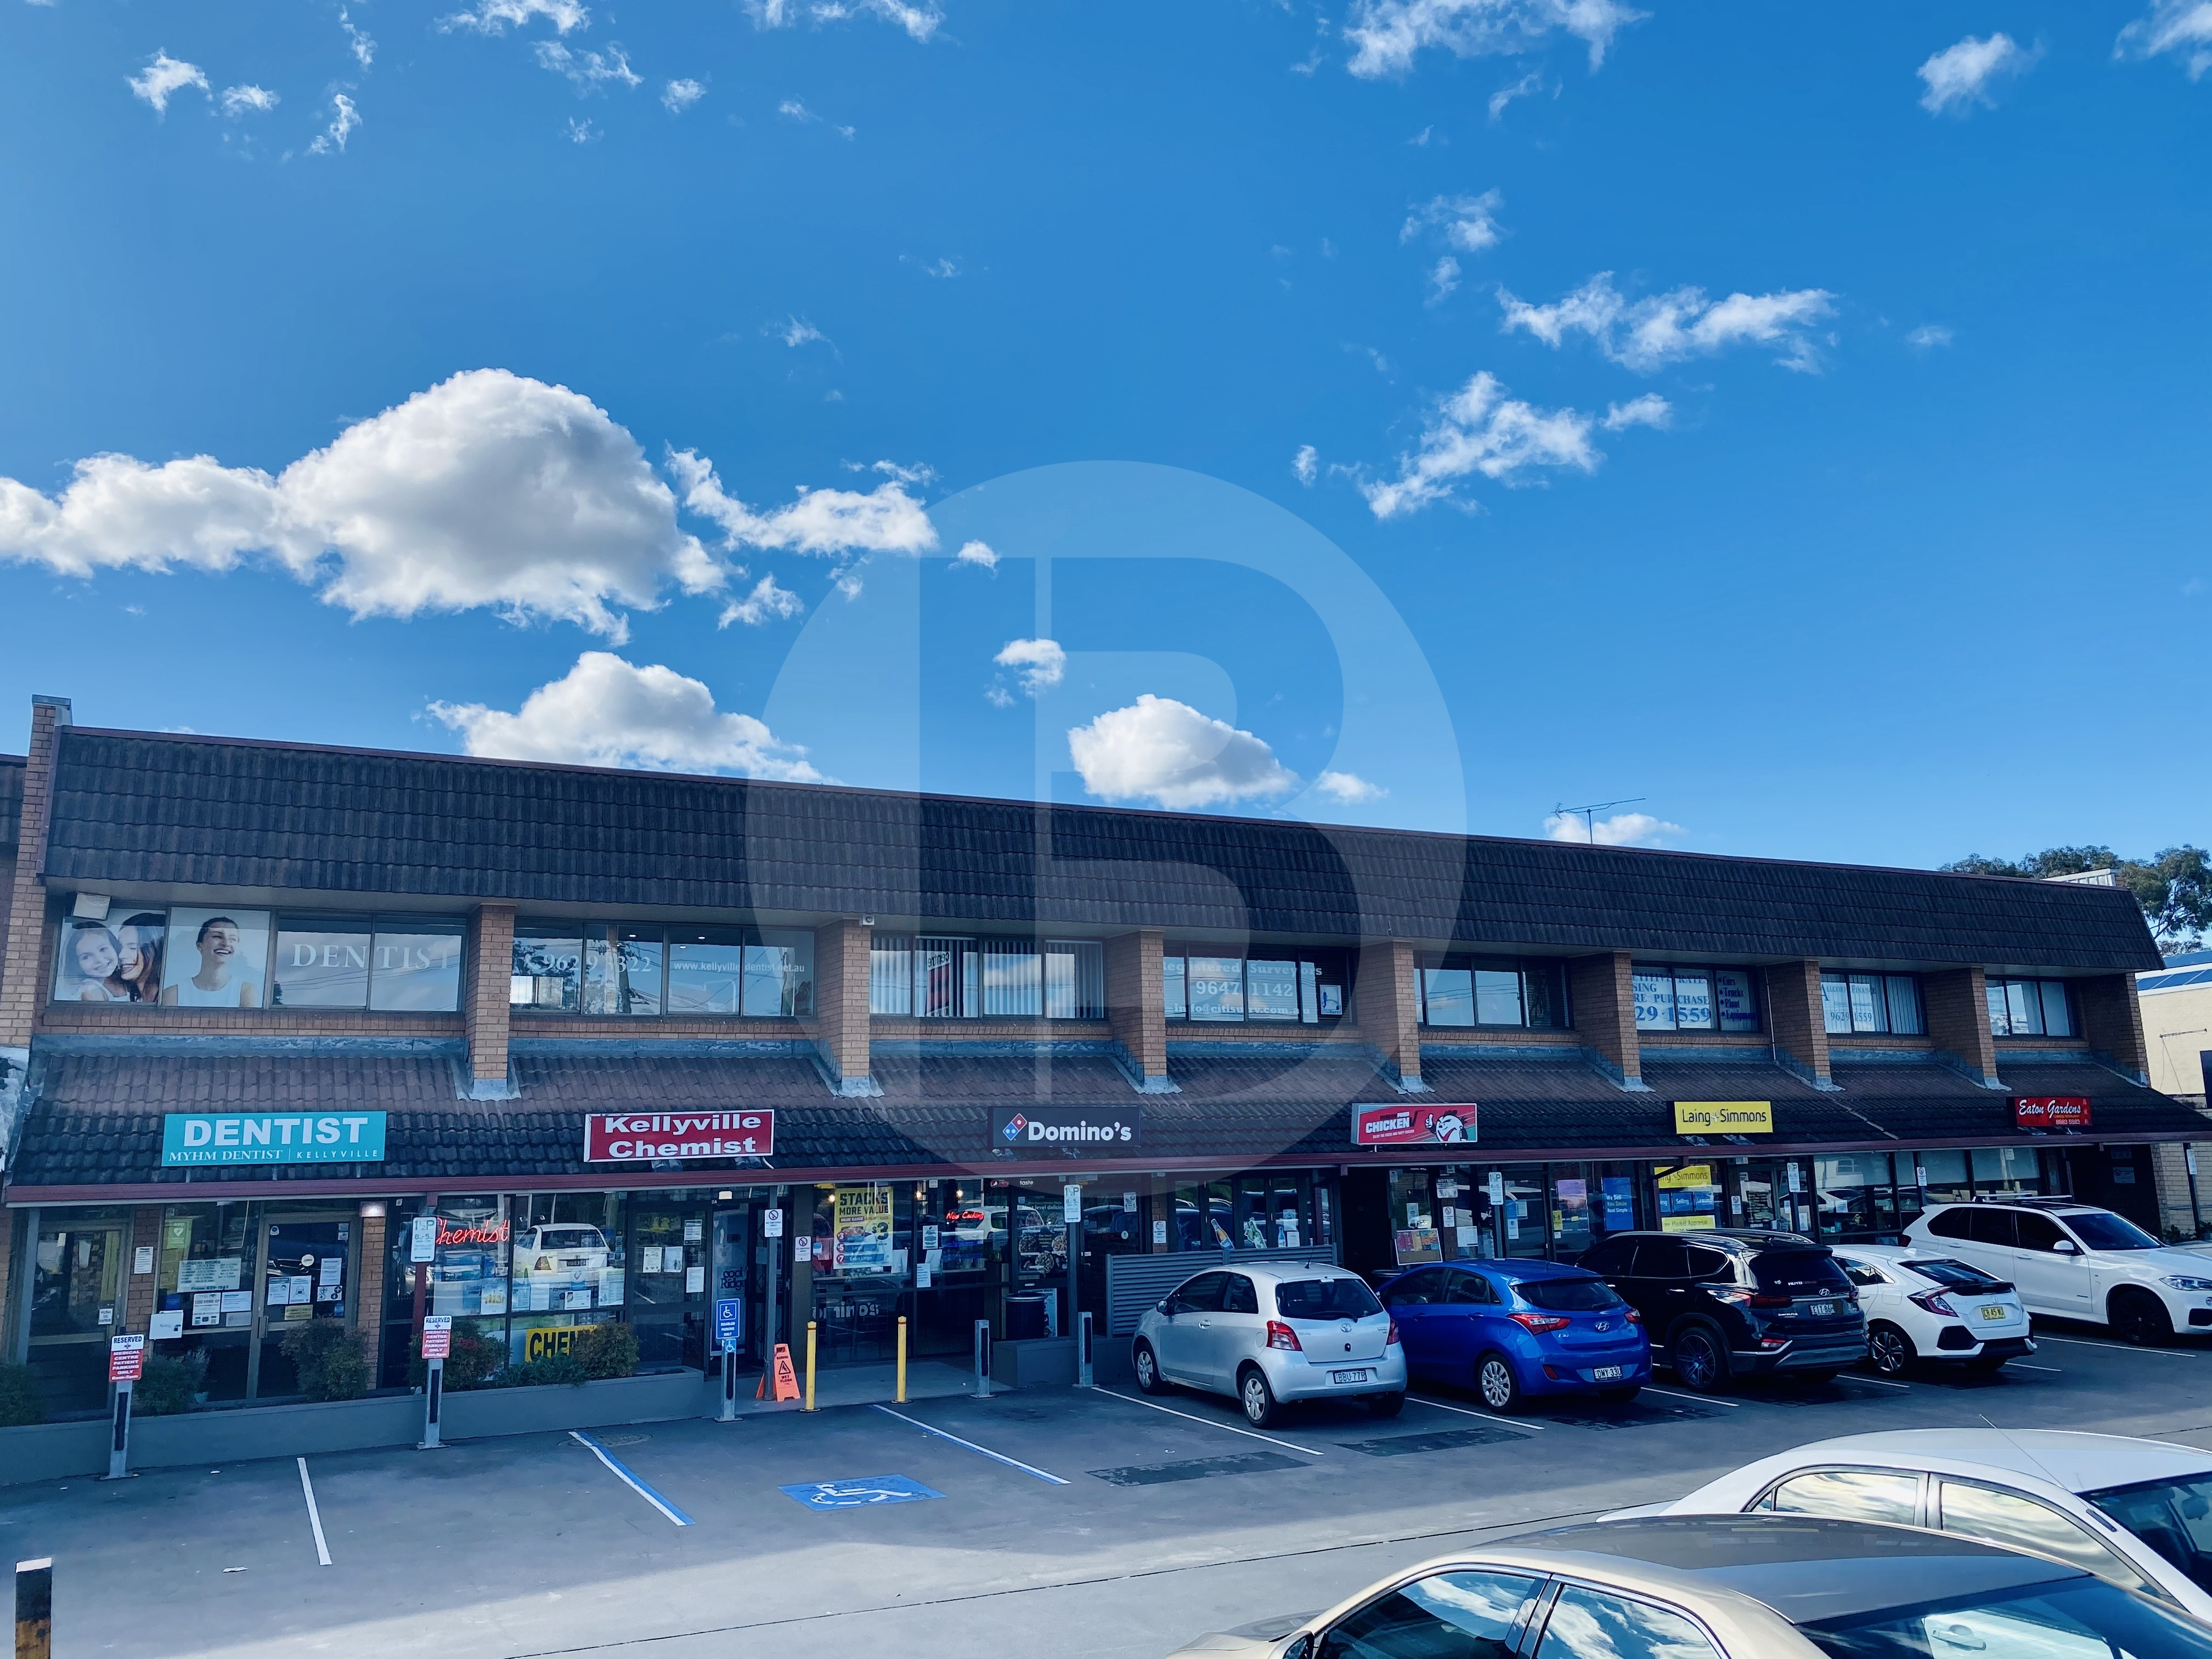 RETAIL/COMMERCIAL FREEHOLD TENANTED INVESTMENT